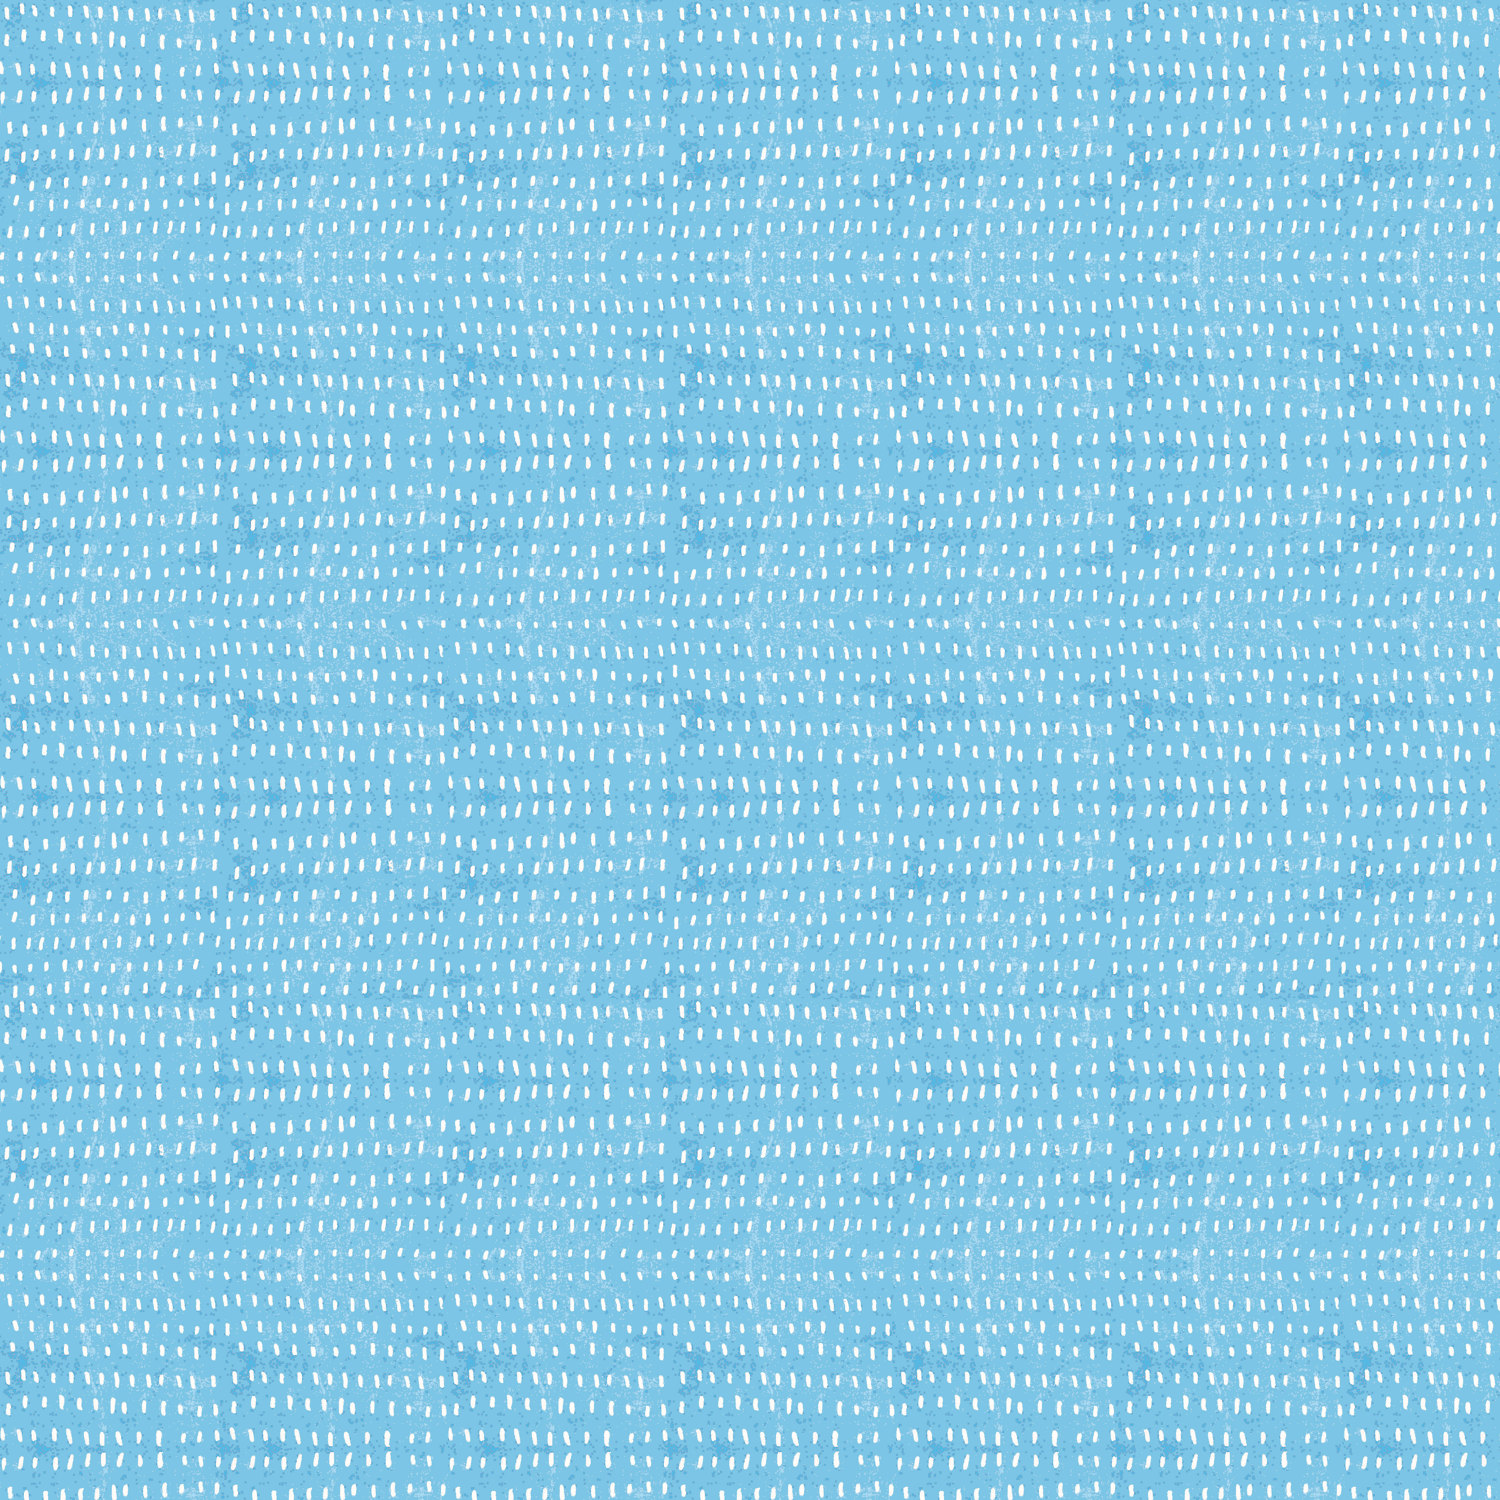 Tiny Seeds in Blue by Cori Dantini from the Hello World collection for Blend #112.103.05.1